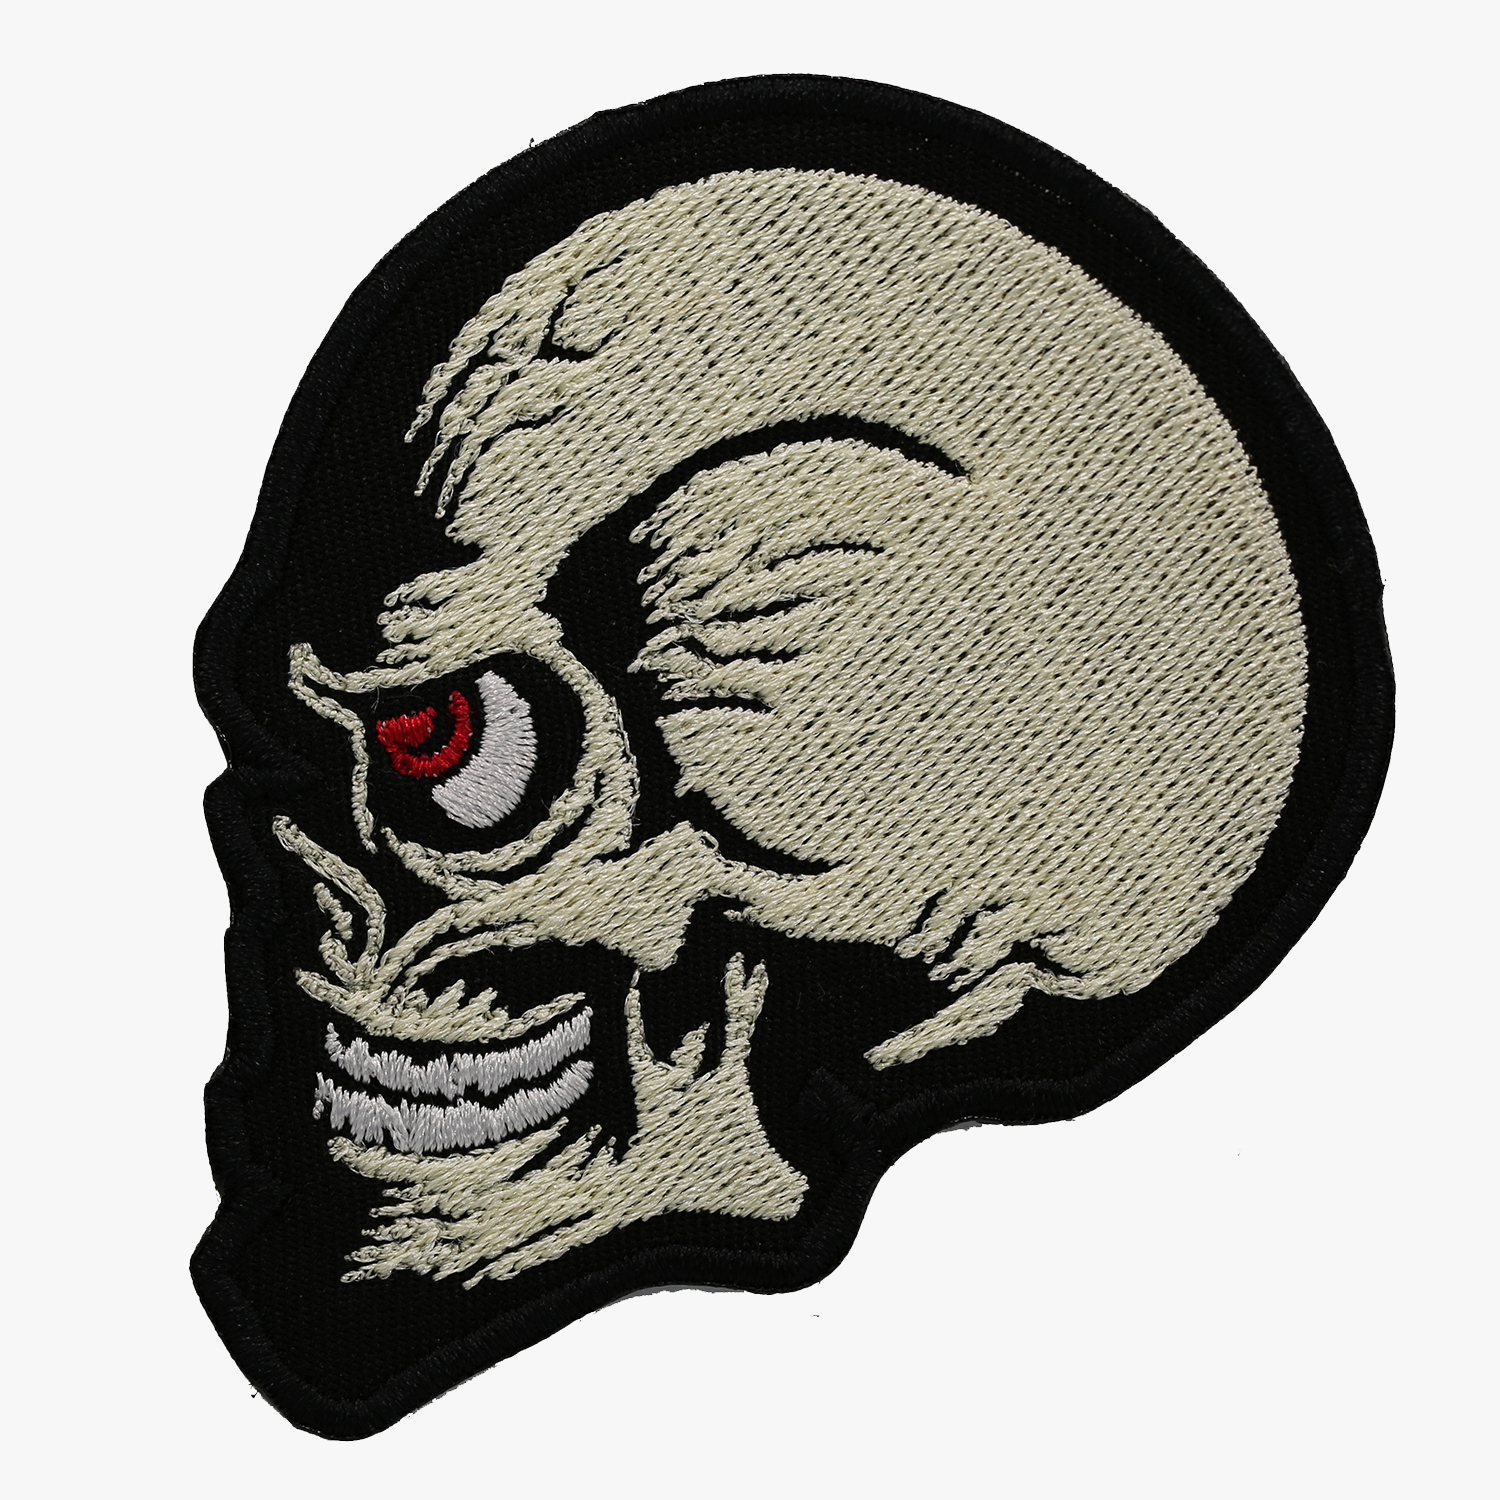 NC PATCHES BIKER SKULL Embroidered Vest Patch